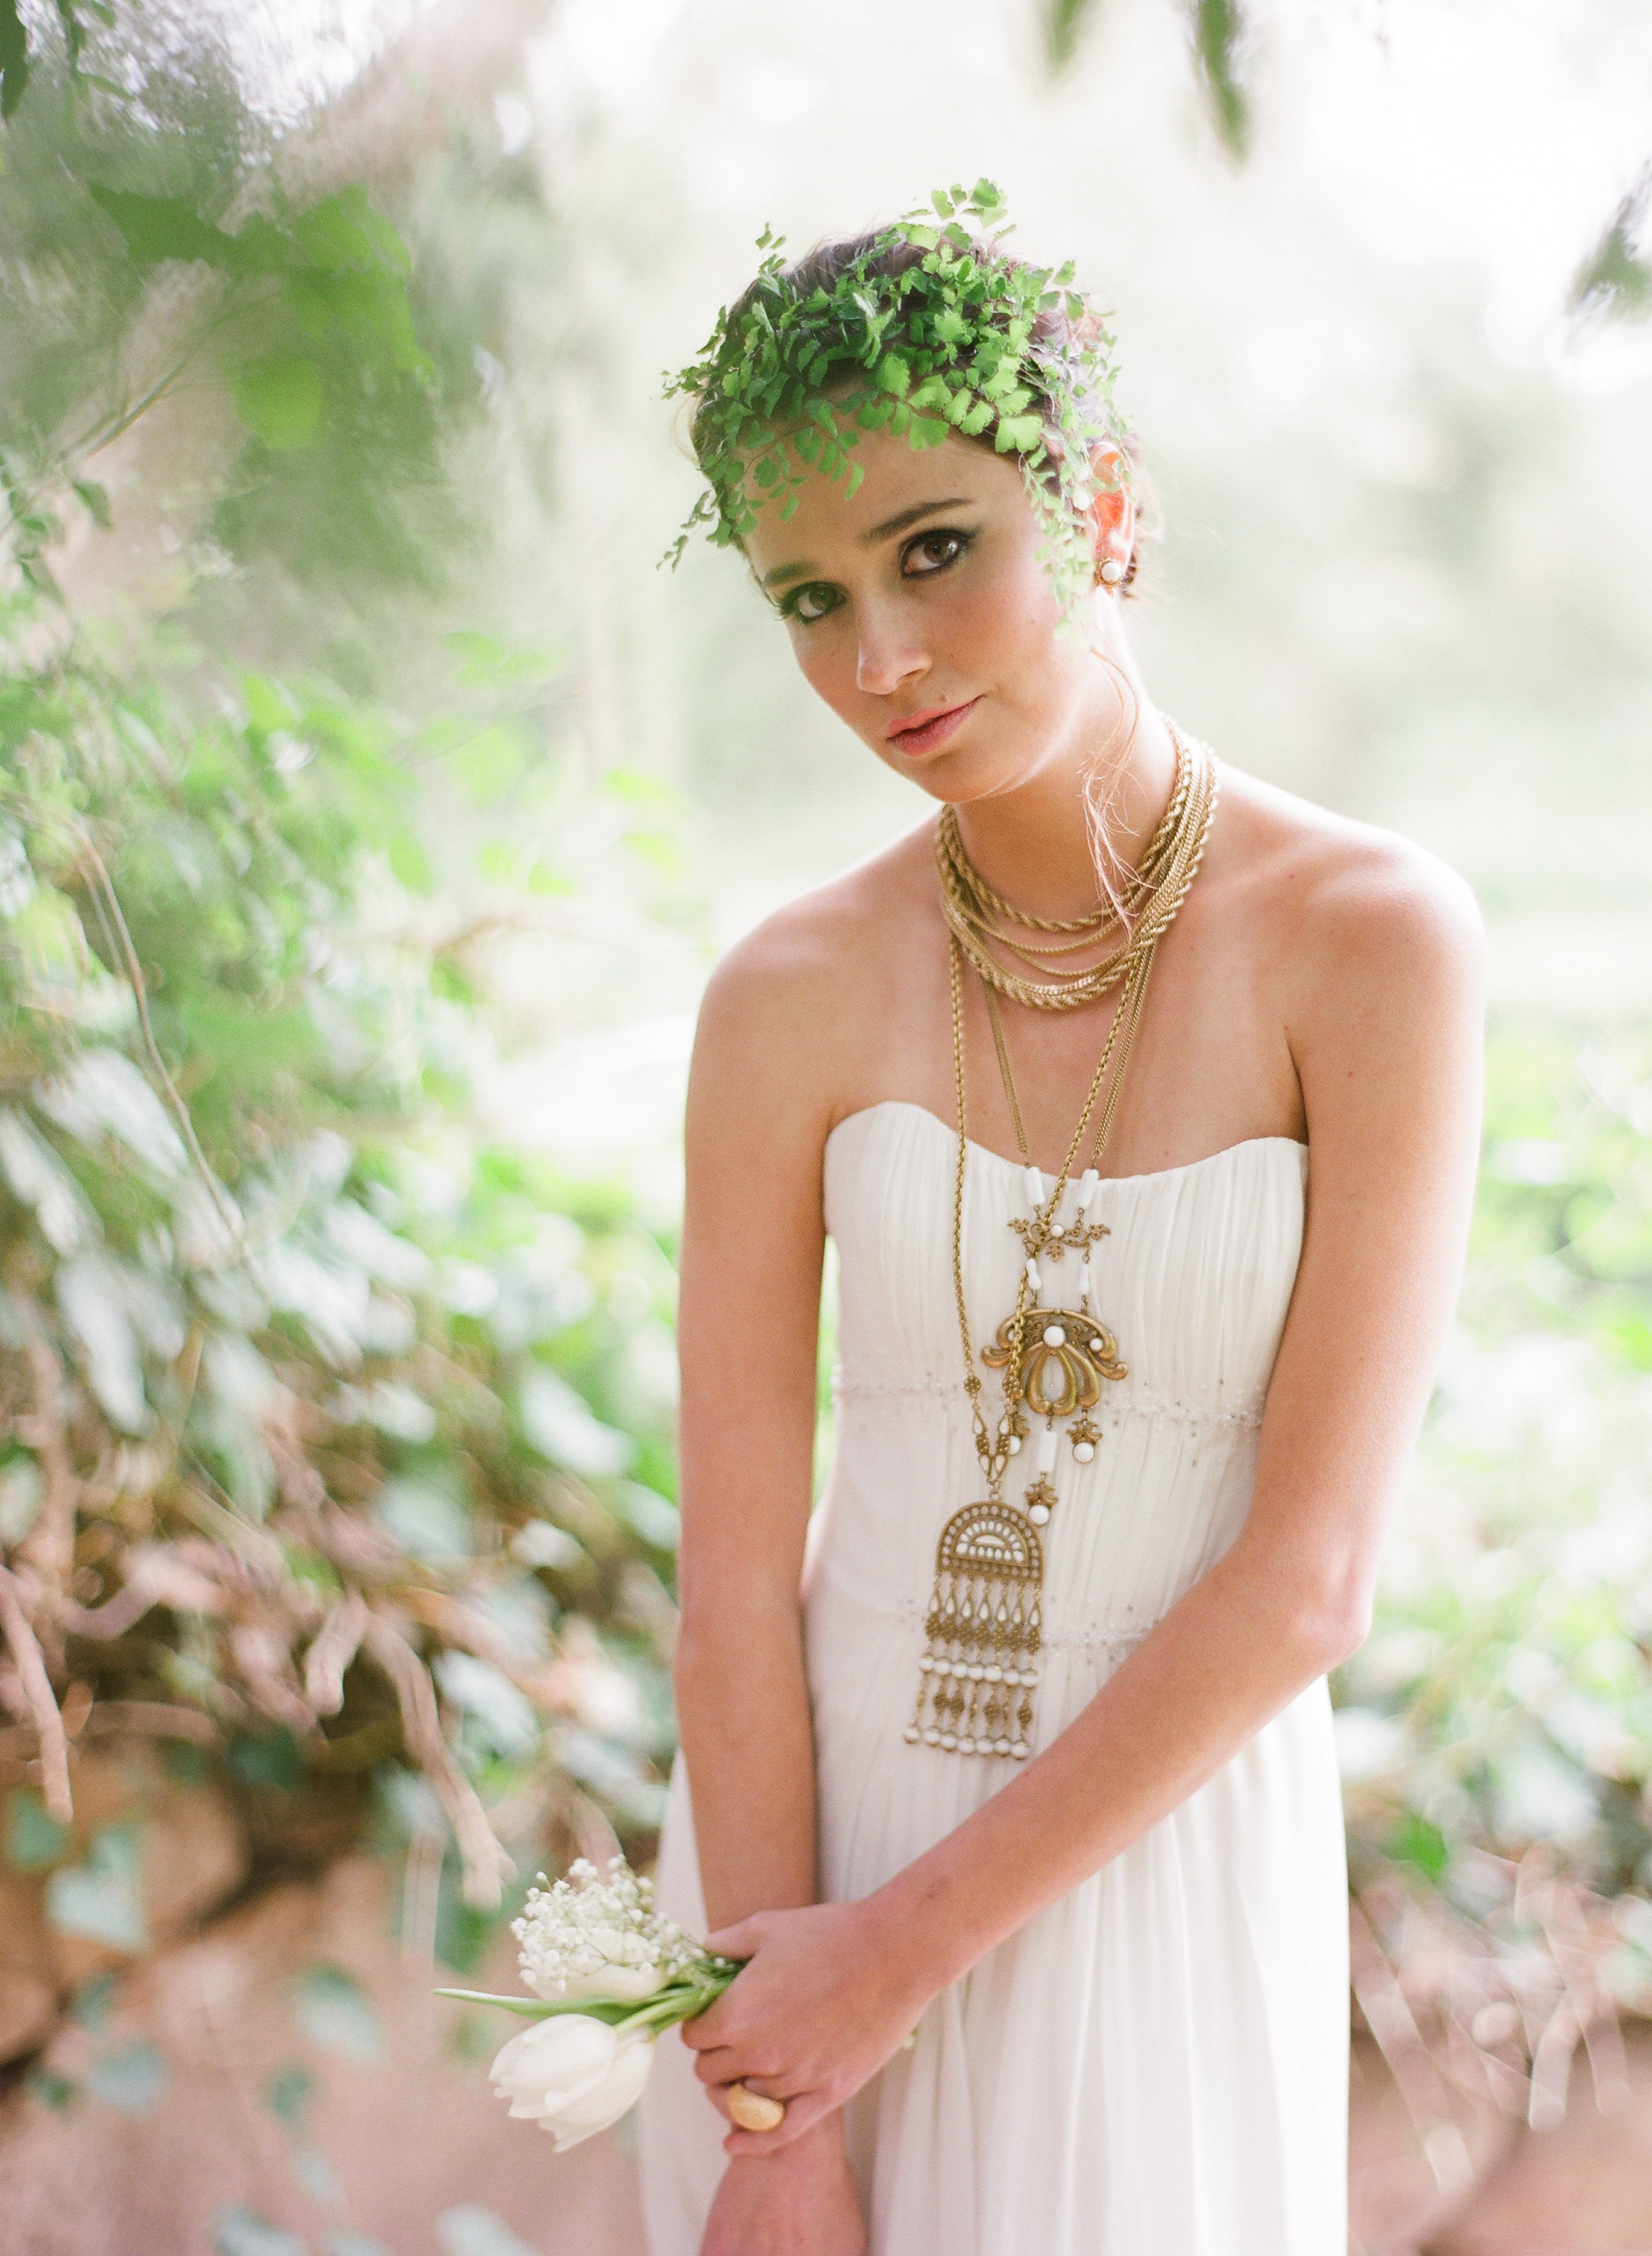 Styled-wedding-santa-barbara-chic-beaux-arts-phtographie-italian-bohemian-wedding-bride-wedding-dress-necklace-gold-105.original